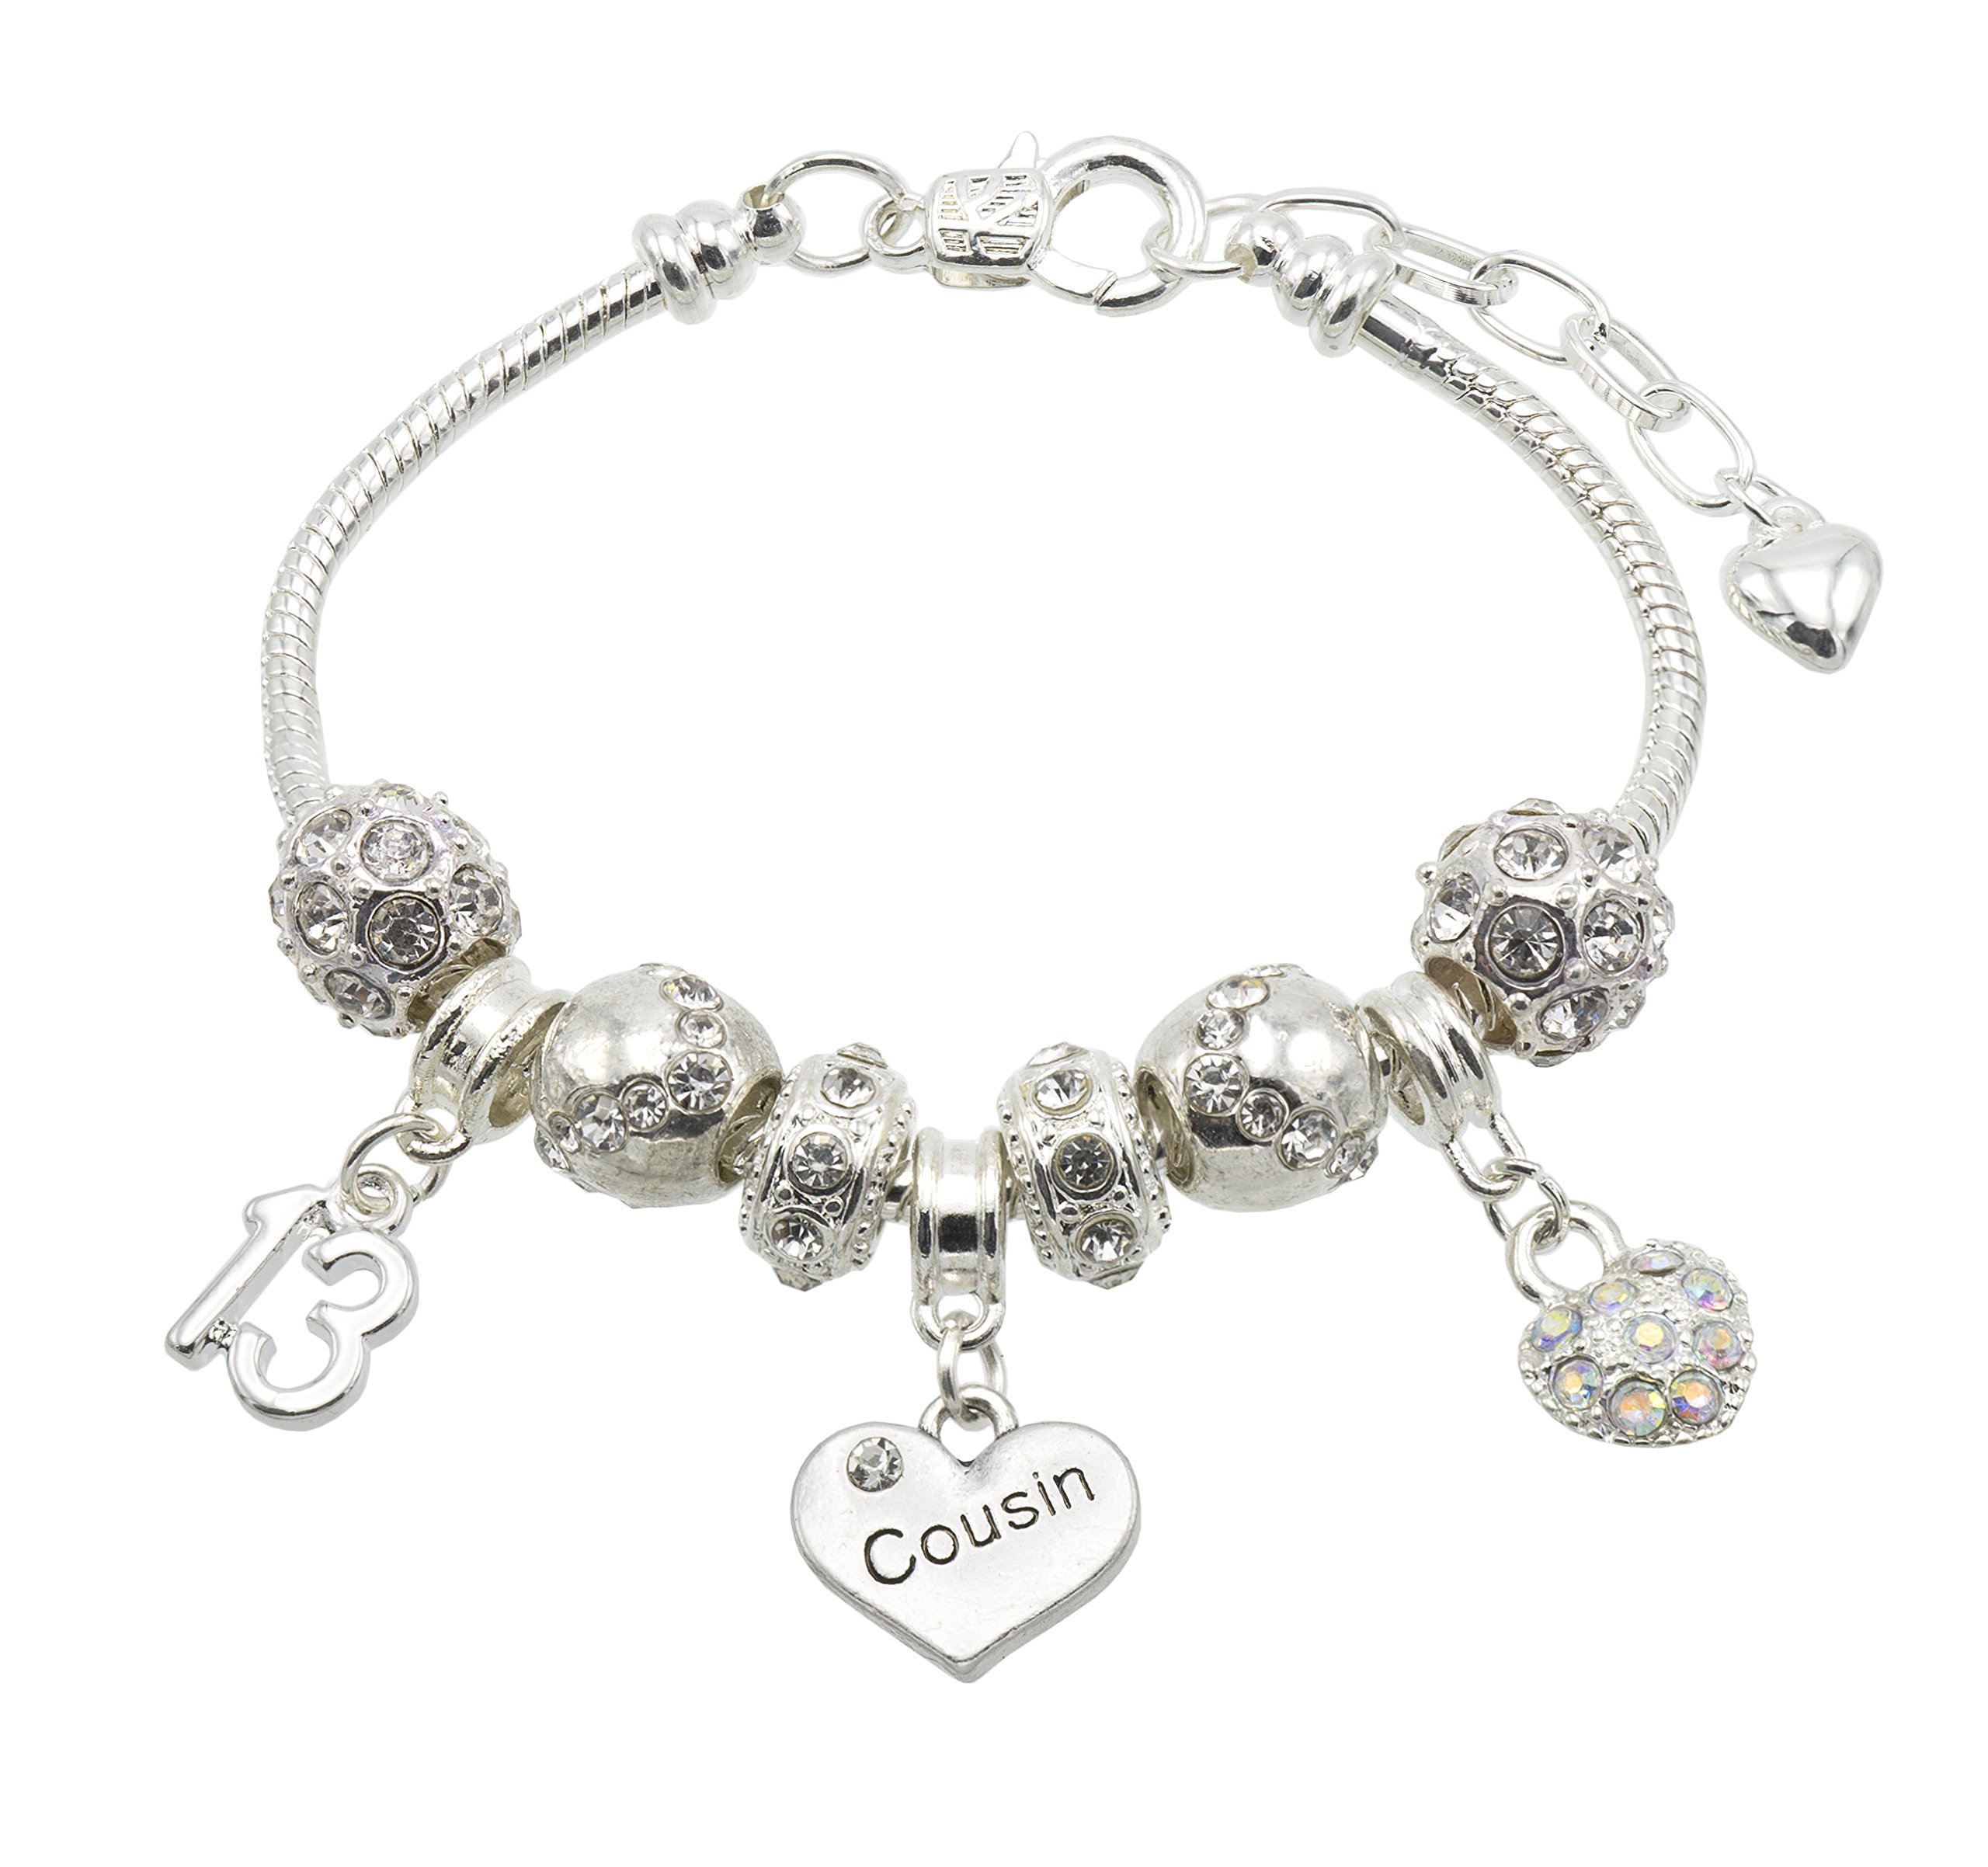 Jewellery Hut Cousin Birthday Charm Bracelet with Gift Box – Ages Available 13, 15, 16, 18, 20, 21, 25, 30, 35, 40, 45 & 50